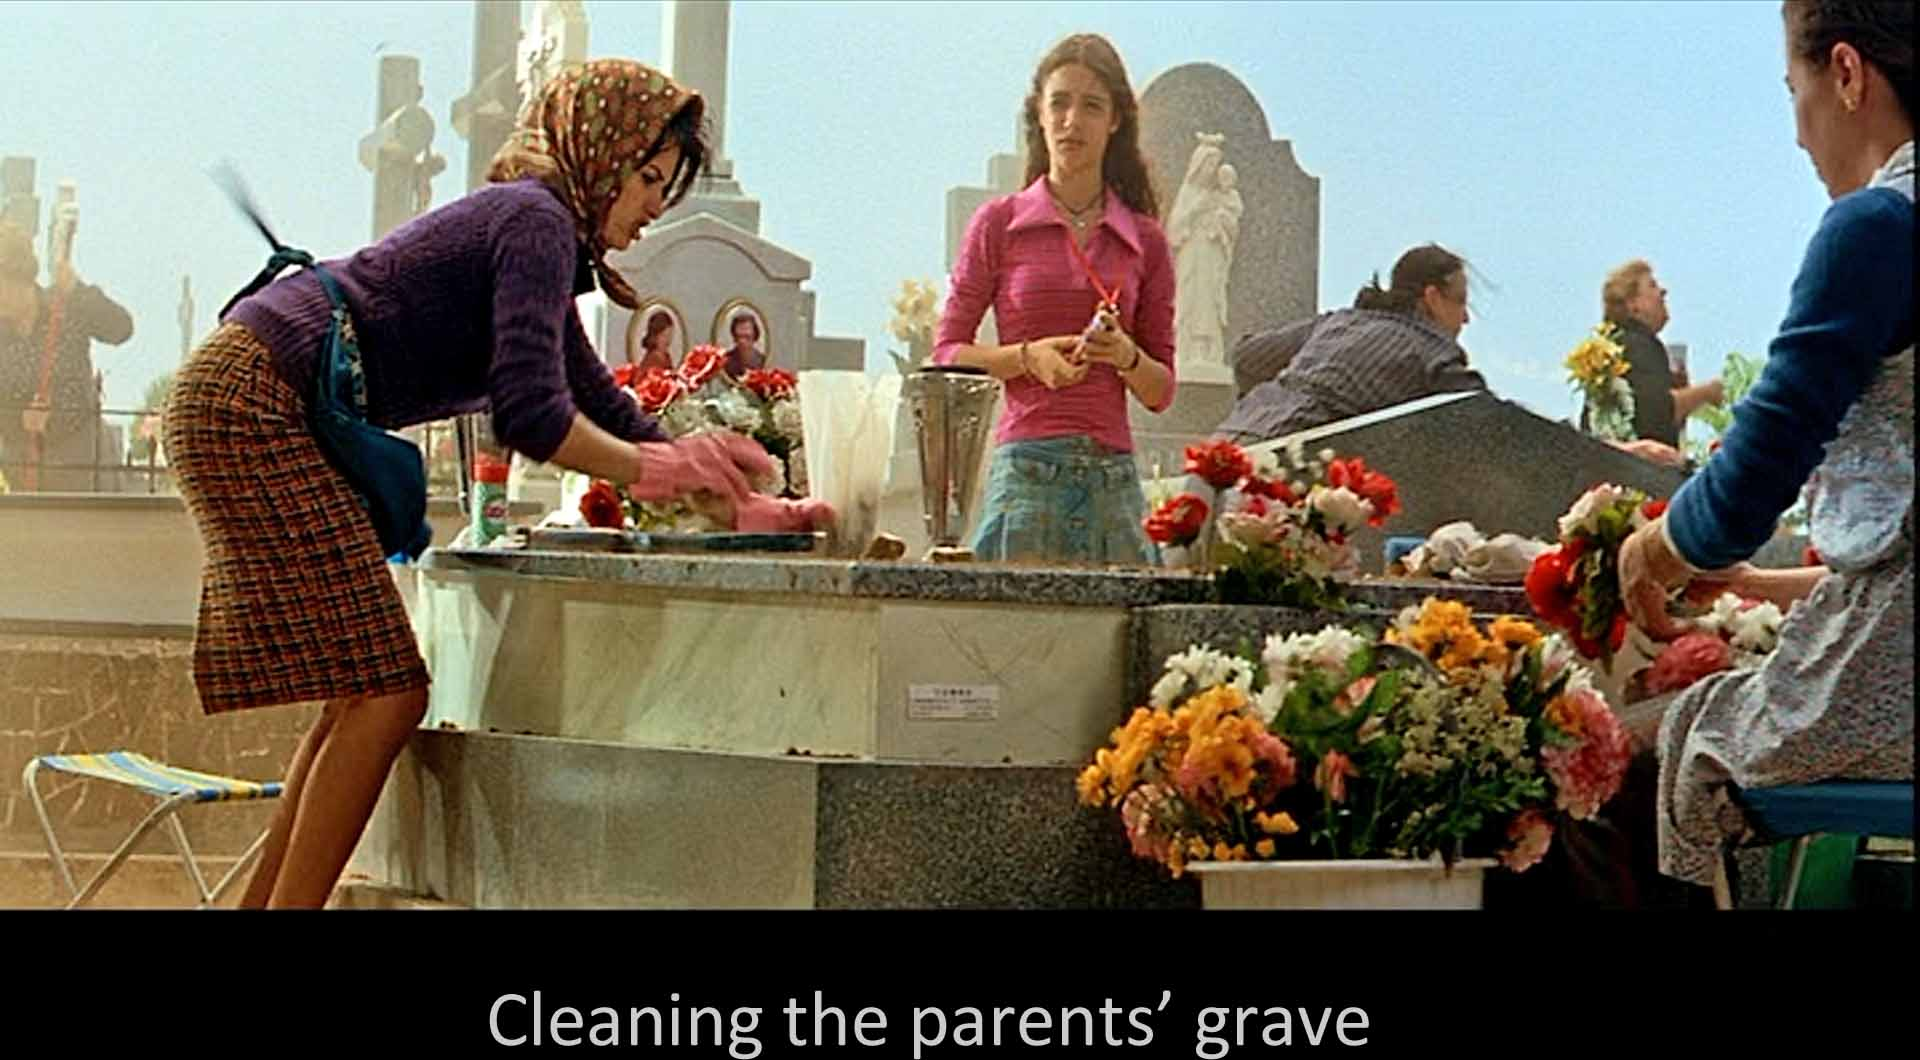 Cleaning the parents' grave